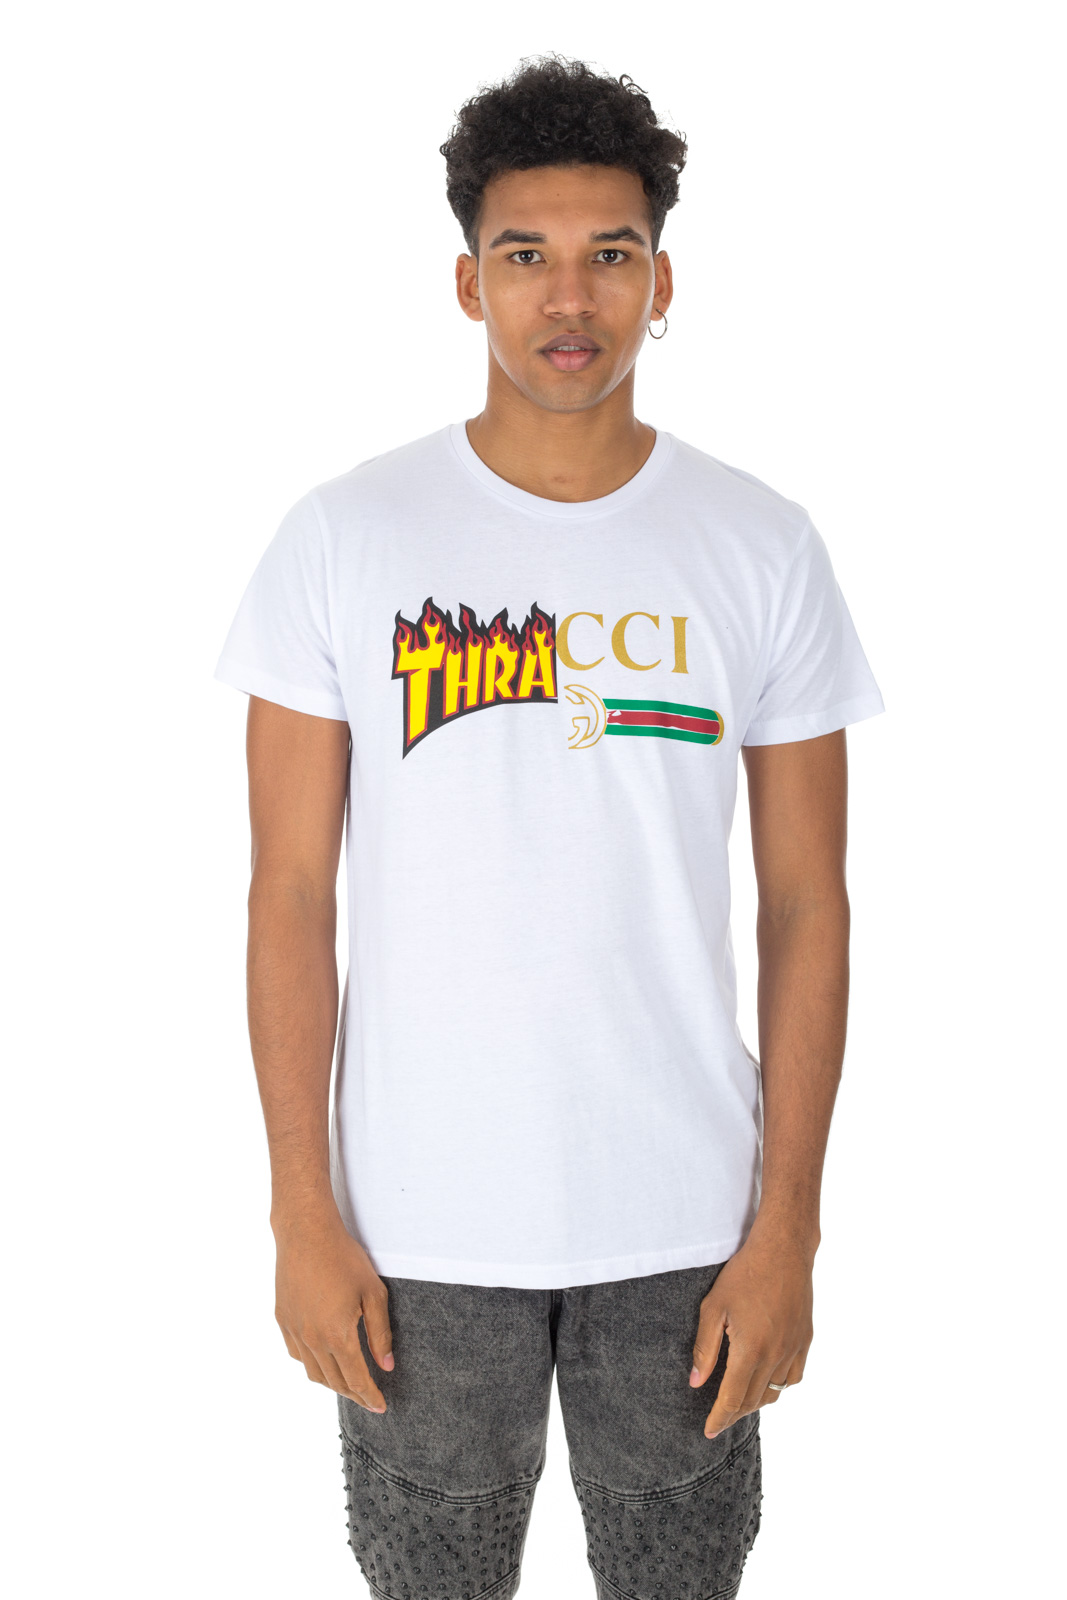 Faking - Thrasher T shirt and Gucci Unisex White